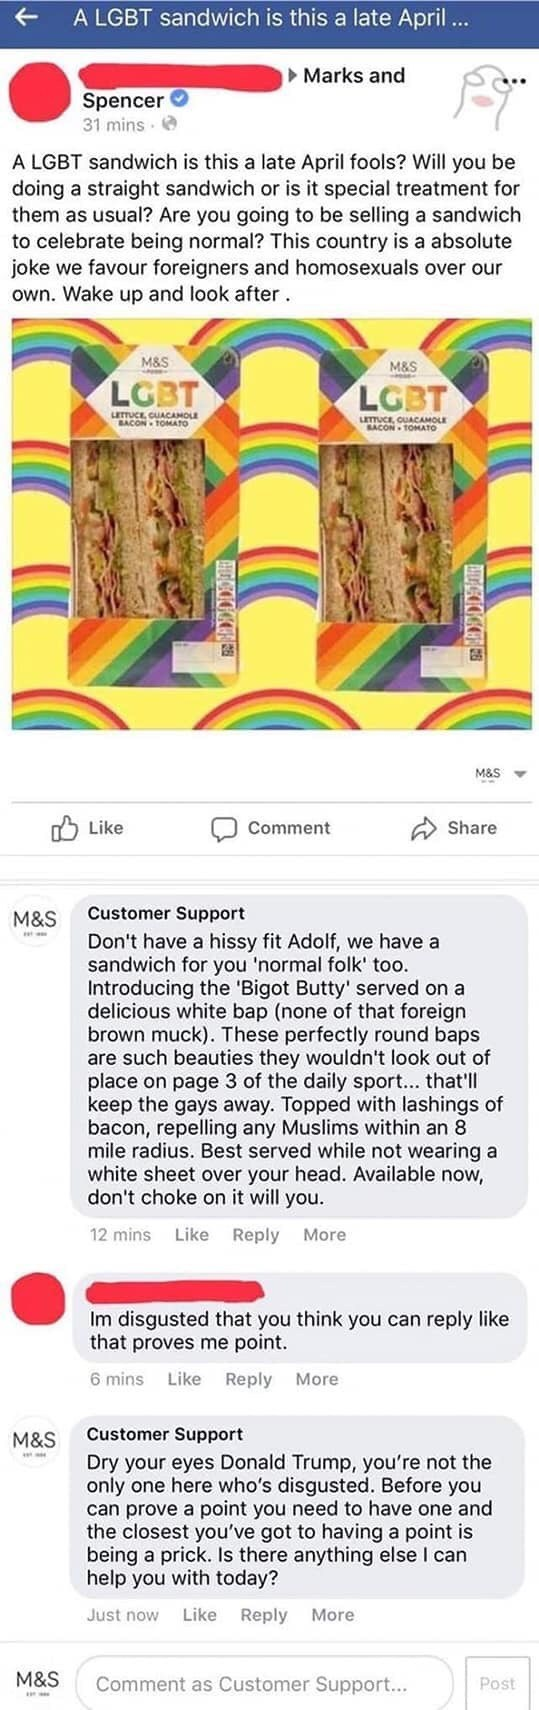 trolling - Text - A LGBT sandwich is this a late April ... Marks and Spencer 31 mins A LGBT sandwich is this a late April fools? Will you be doing a straight sandwich or is it special treatment for them as usual? Are you going to be selling a sandwich to celebrate being normal? This country is a absolute joke we favour foreigners and homosexuals over our own. Wake up and look after M&S M&S LGBT LGBT LETTUCE CUACAMOLE BACON TOMATO LETTUCE, CUACAMOLE BACON-TOMATO M&S Share Like Comment Customer Su